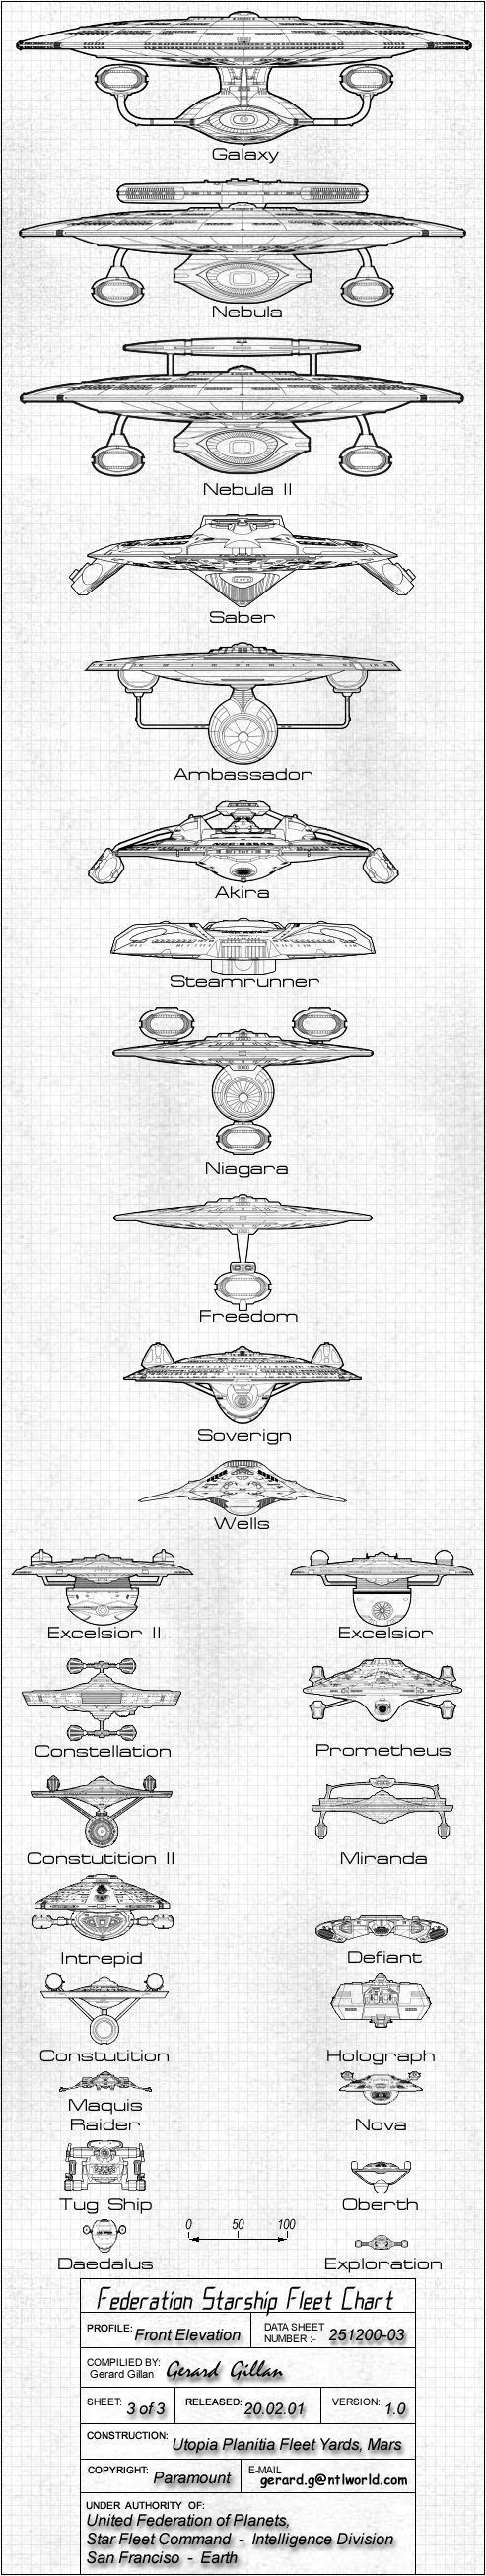 This is a great graphic of the front of the Federation's major vessels.